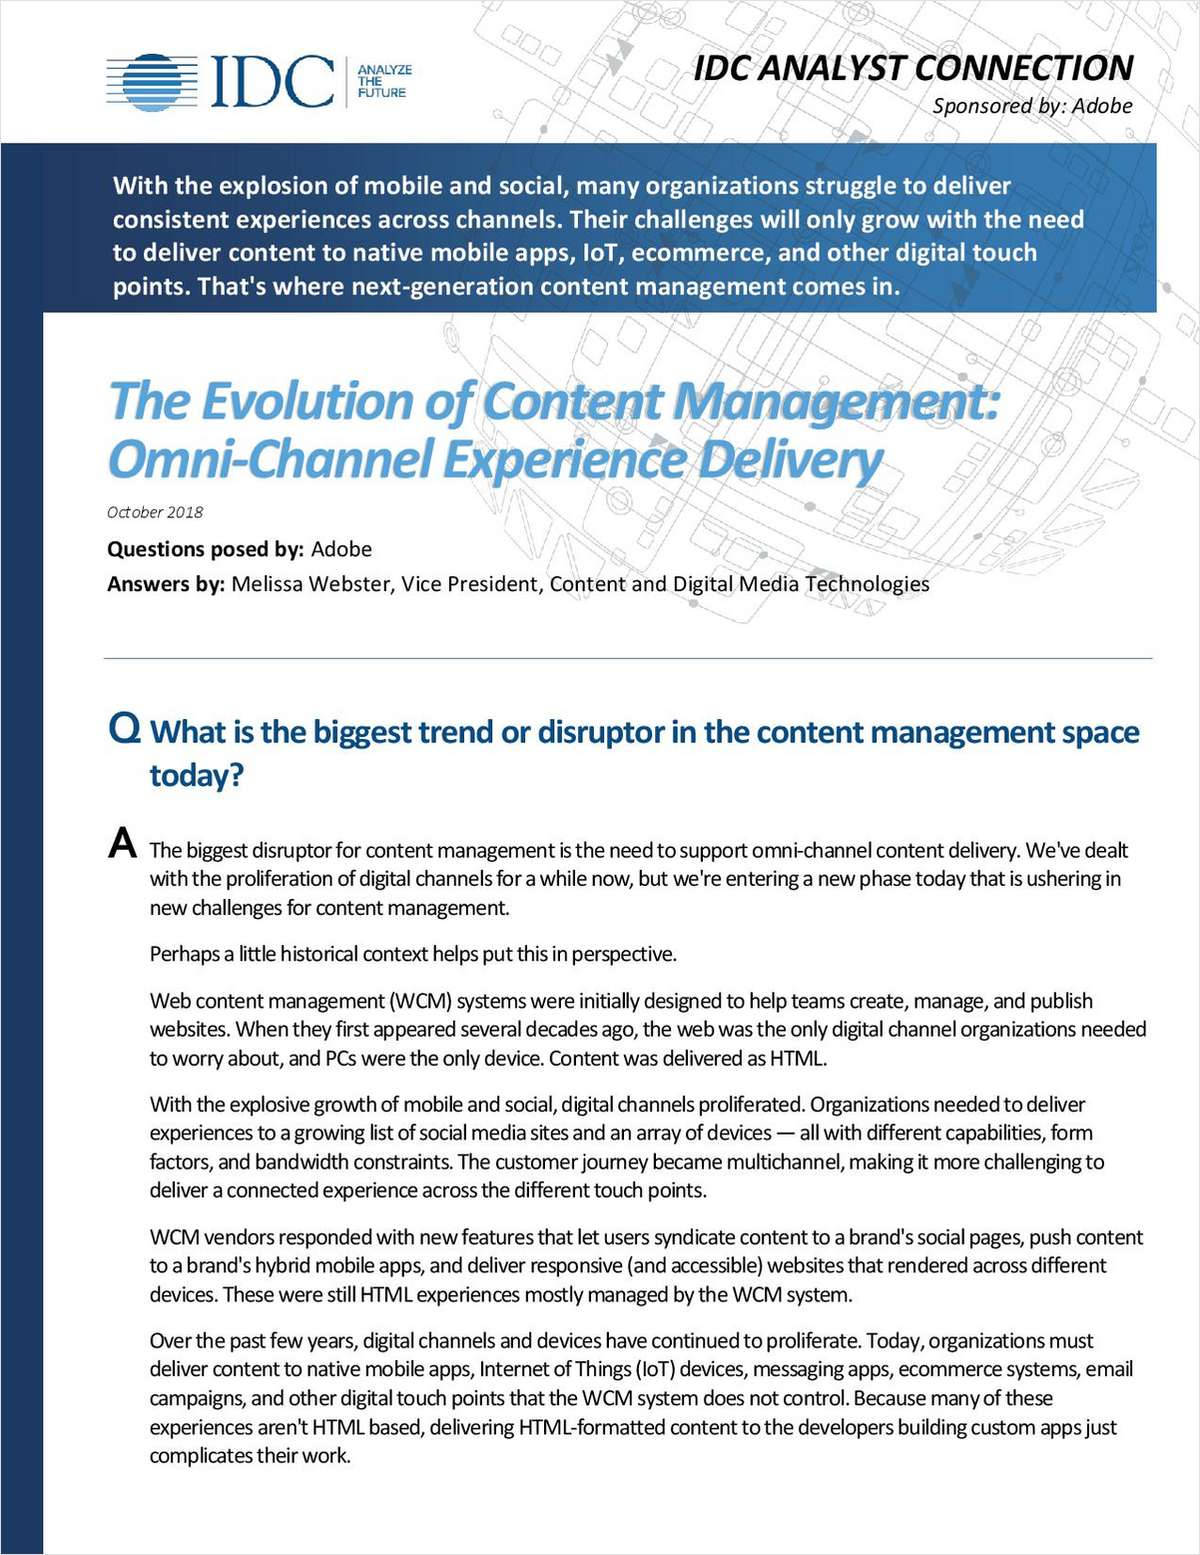 The Evolution to Content Management - Omni-Channel Experience Delivery